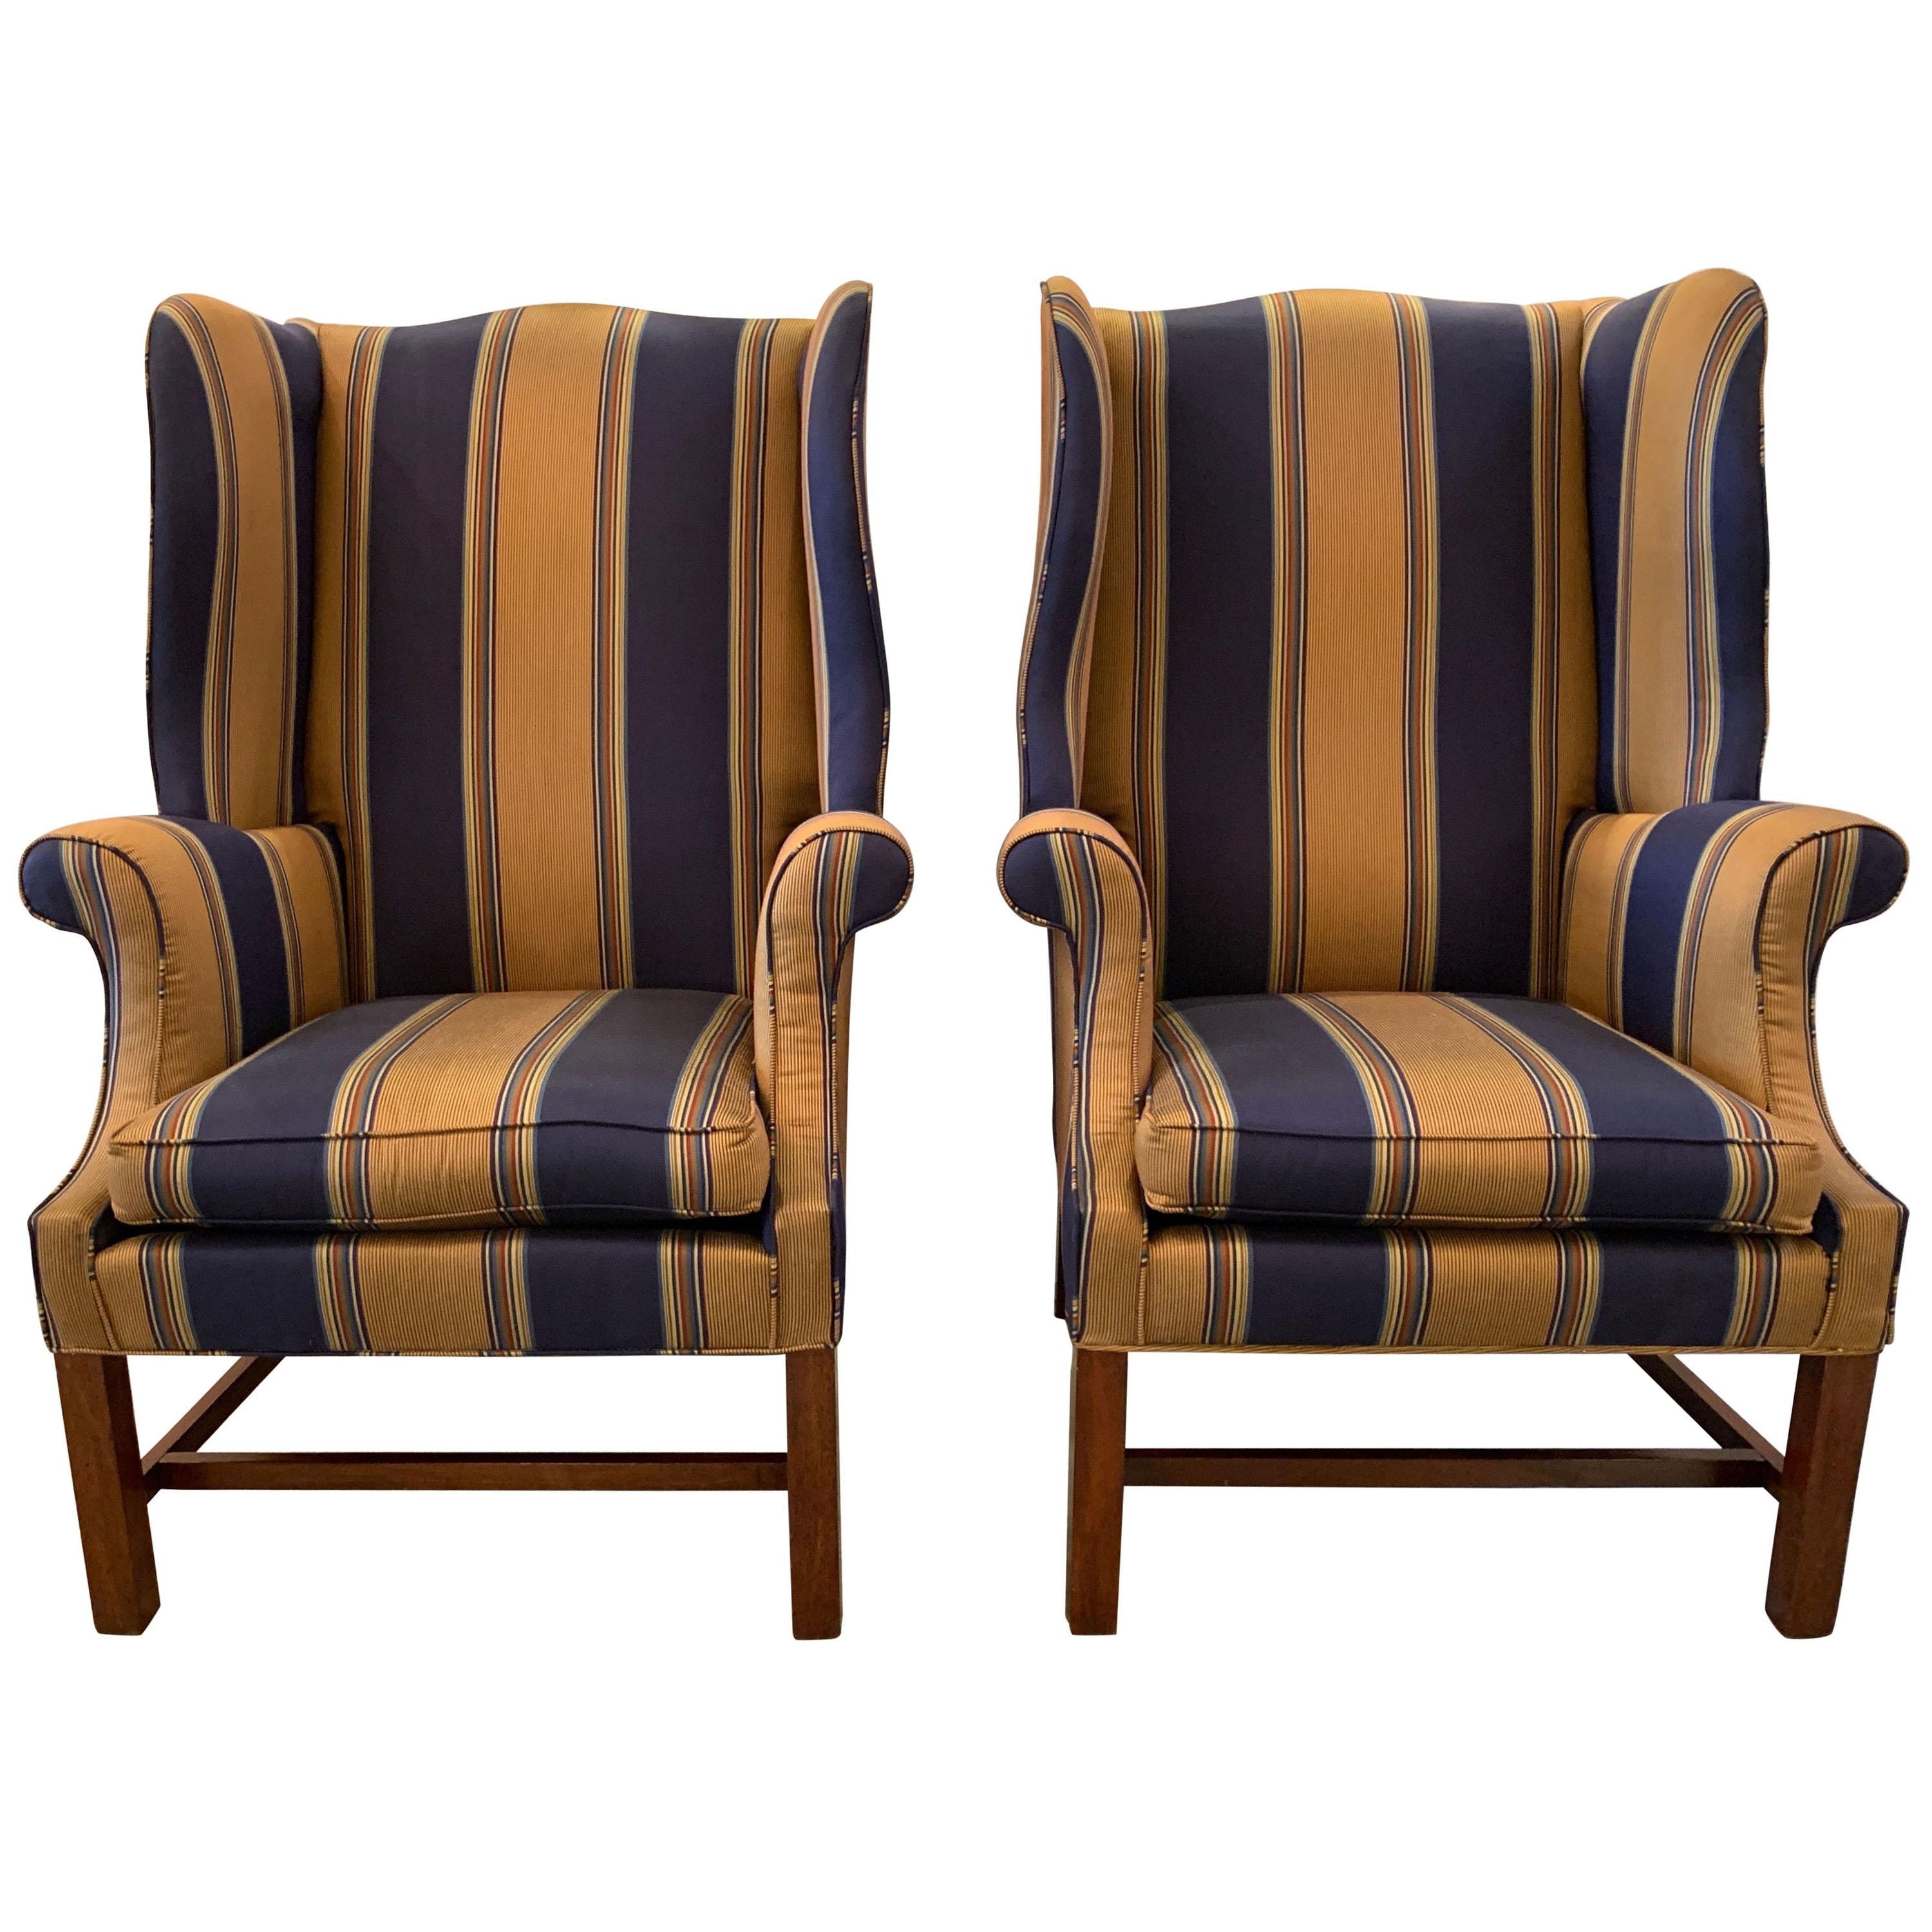 Handsome Pair of Chinese Chippendale Style Wing Chairs